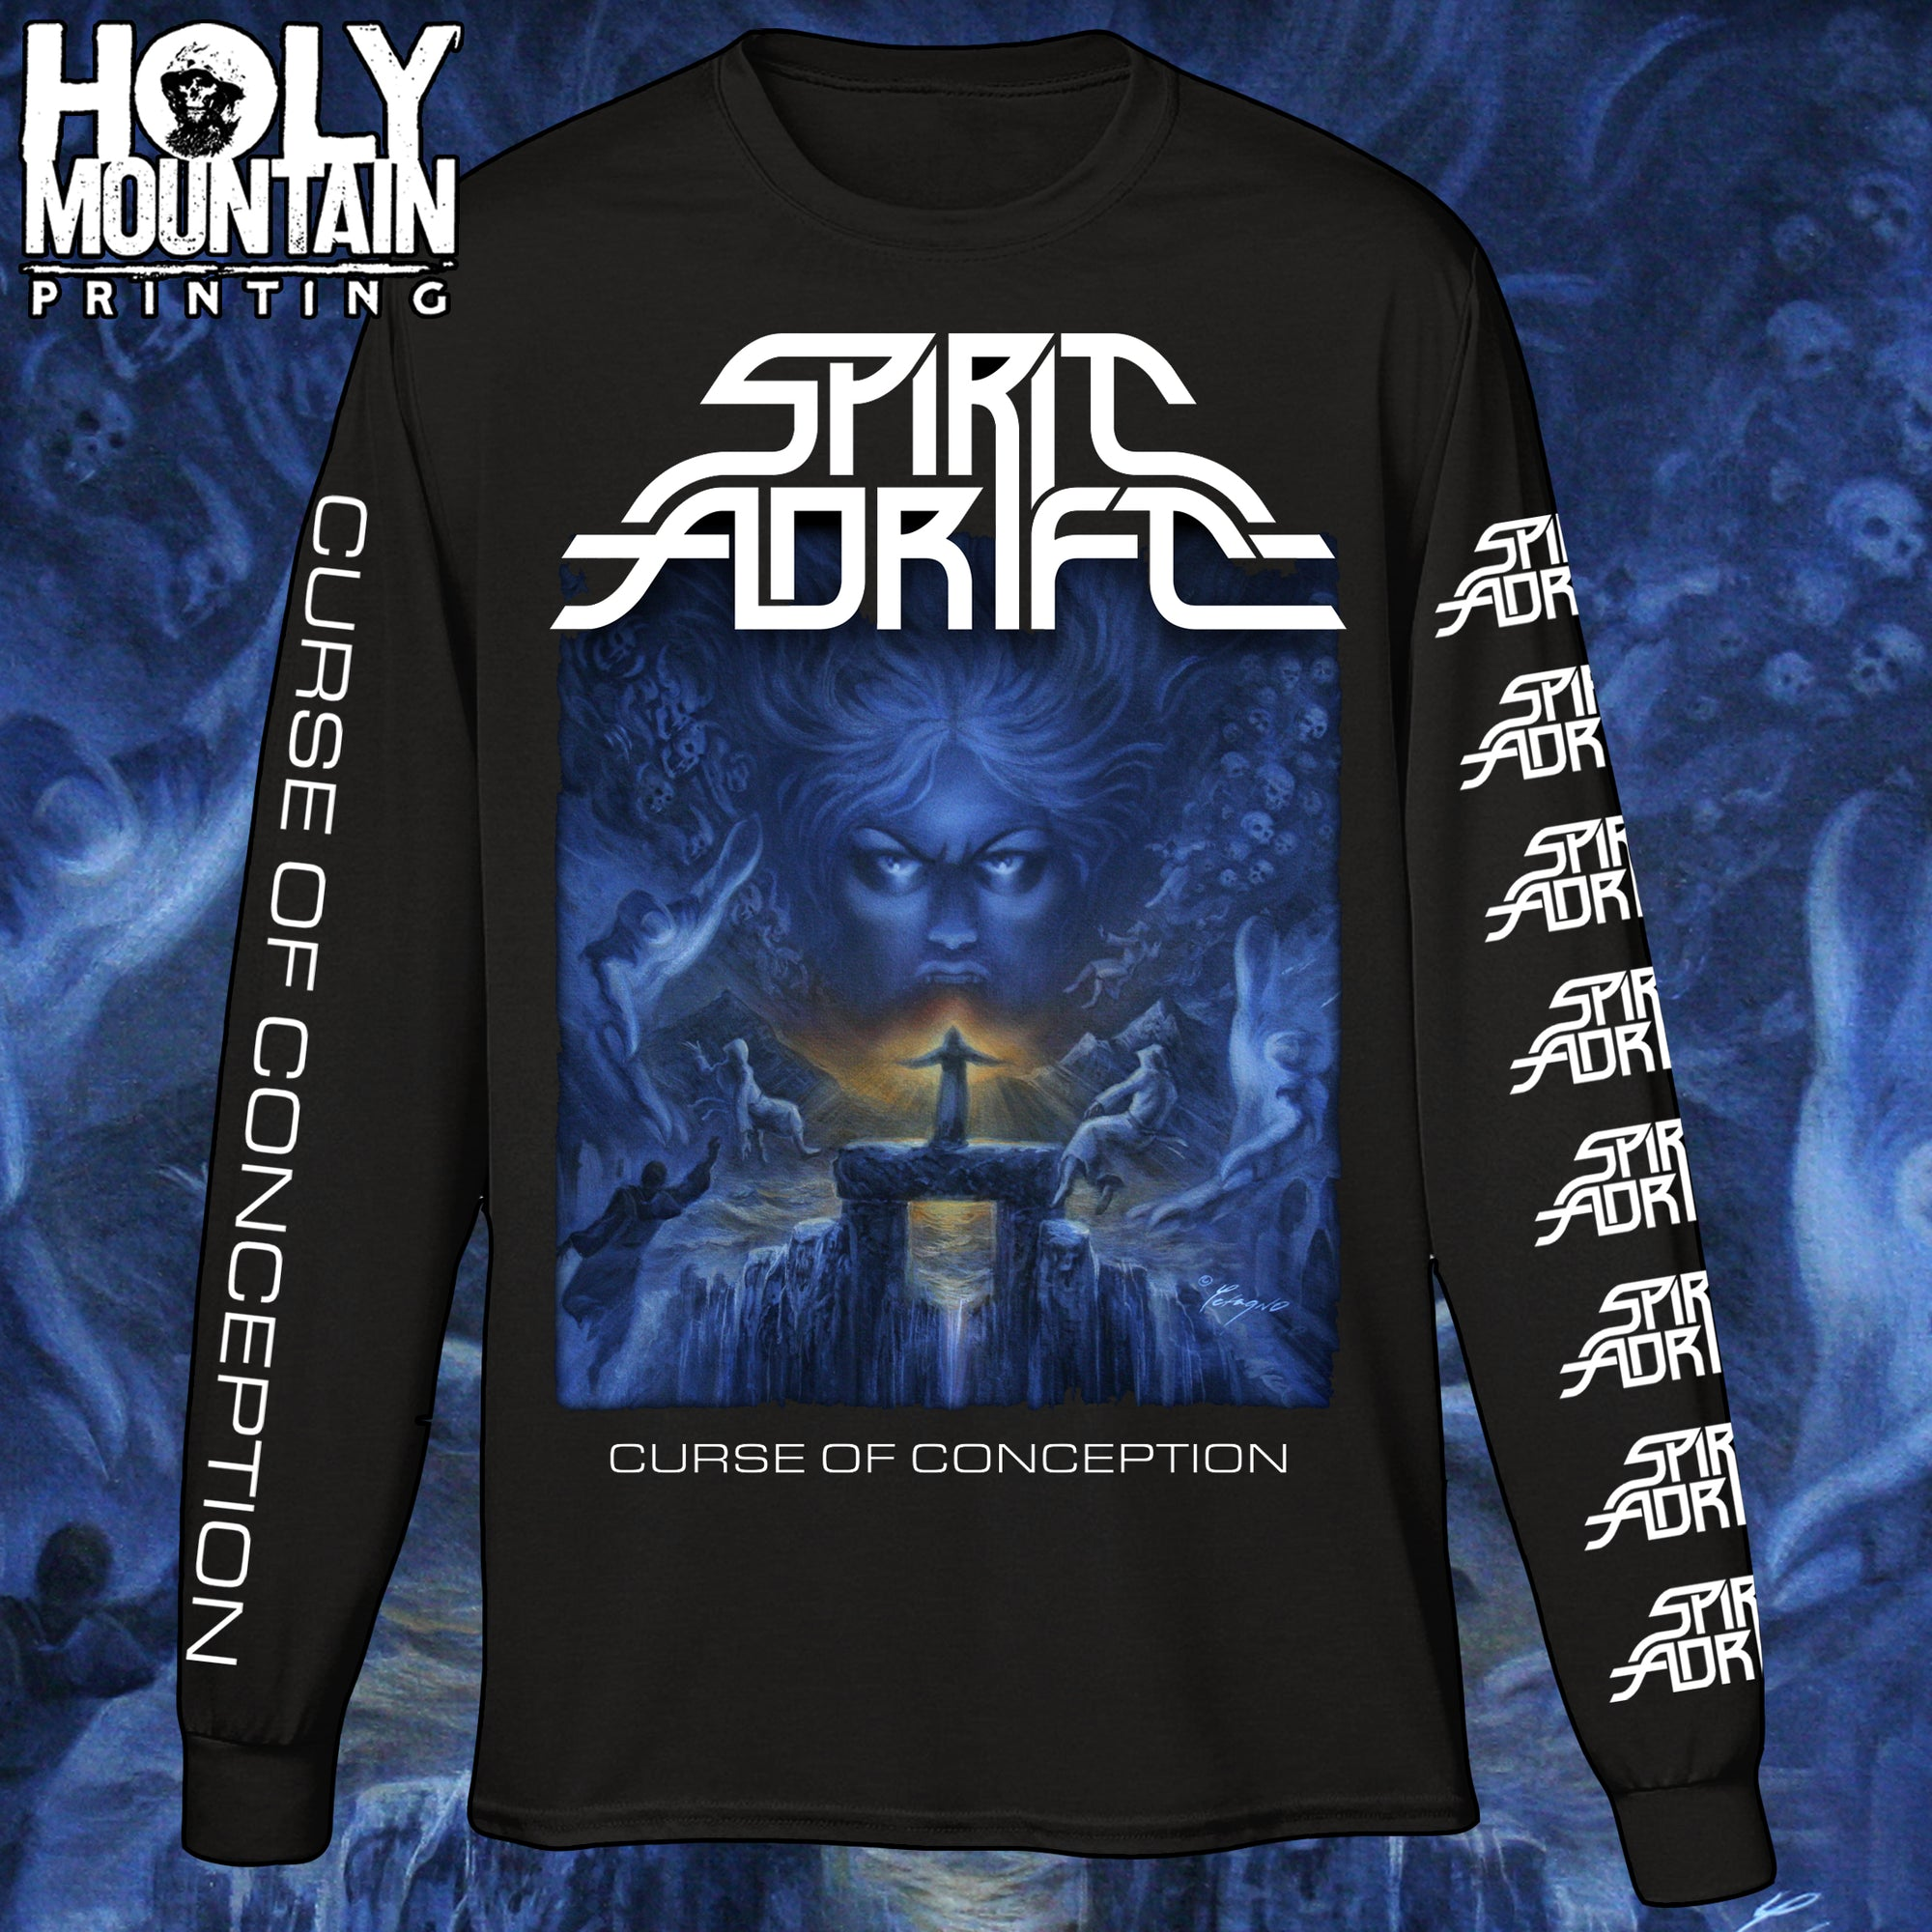 "SPIRIT ADRIFT ""CURSE OF CONCEPTION"" LONG SLEEVE SHIRT"